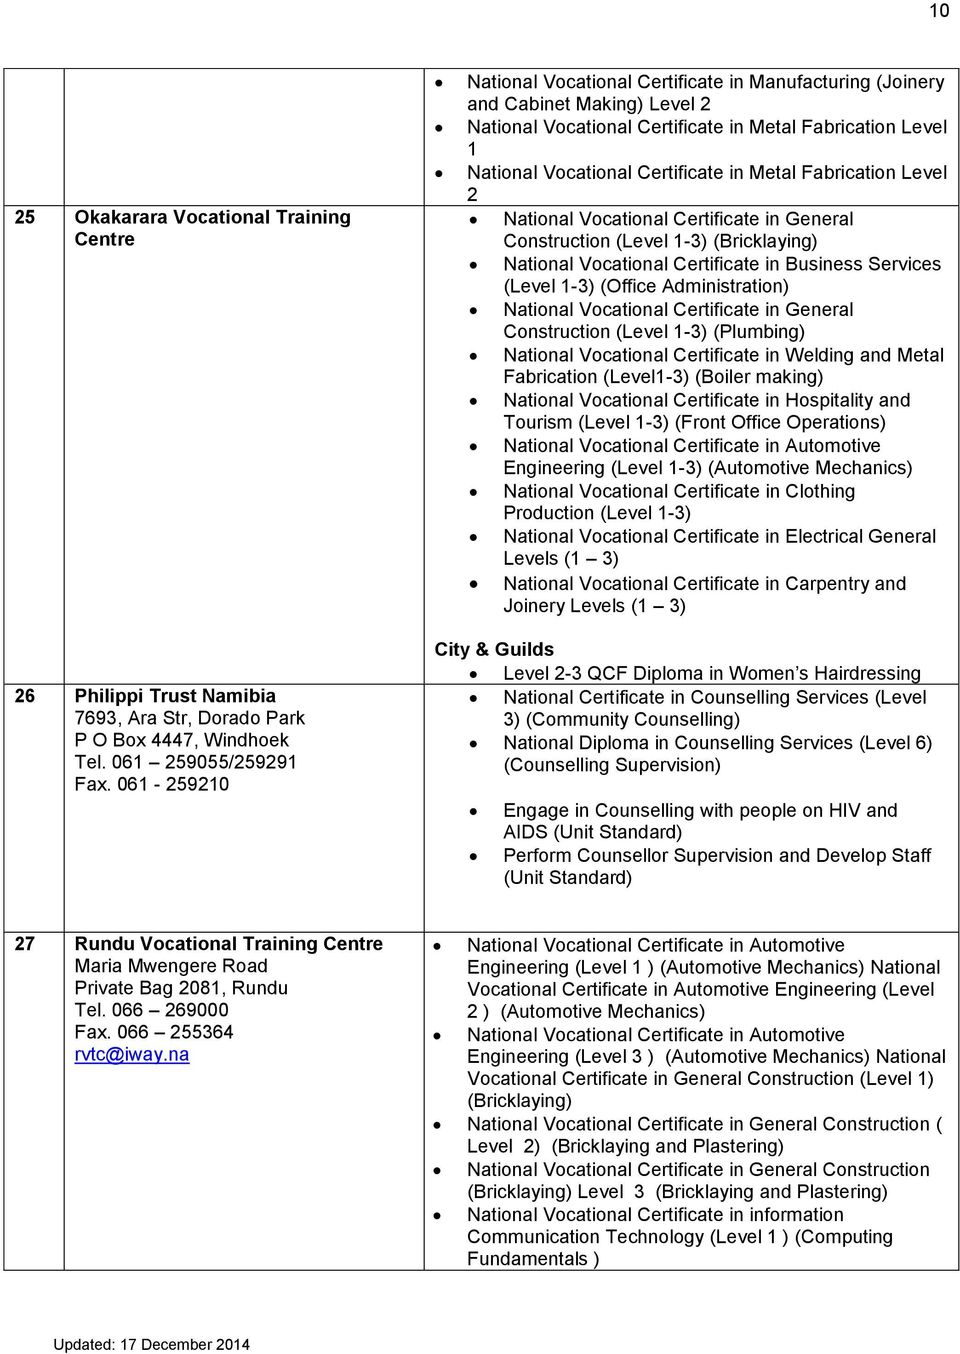 (Office Administration) National Vocational Certificate in General Construction (Level 1-3) (Plumbing) National Vocational Certificate in Welding and Metal Fabrication (Level1-3) (Boiler making)